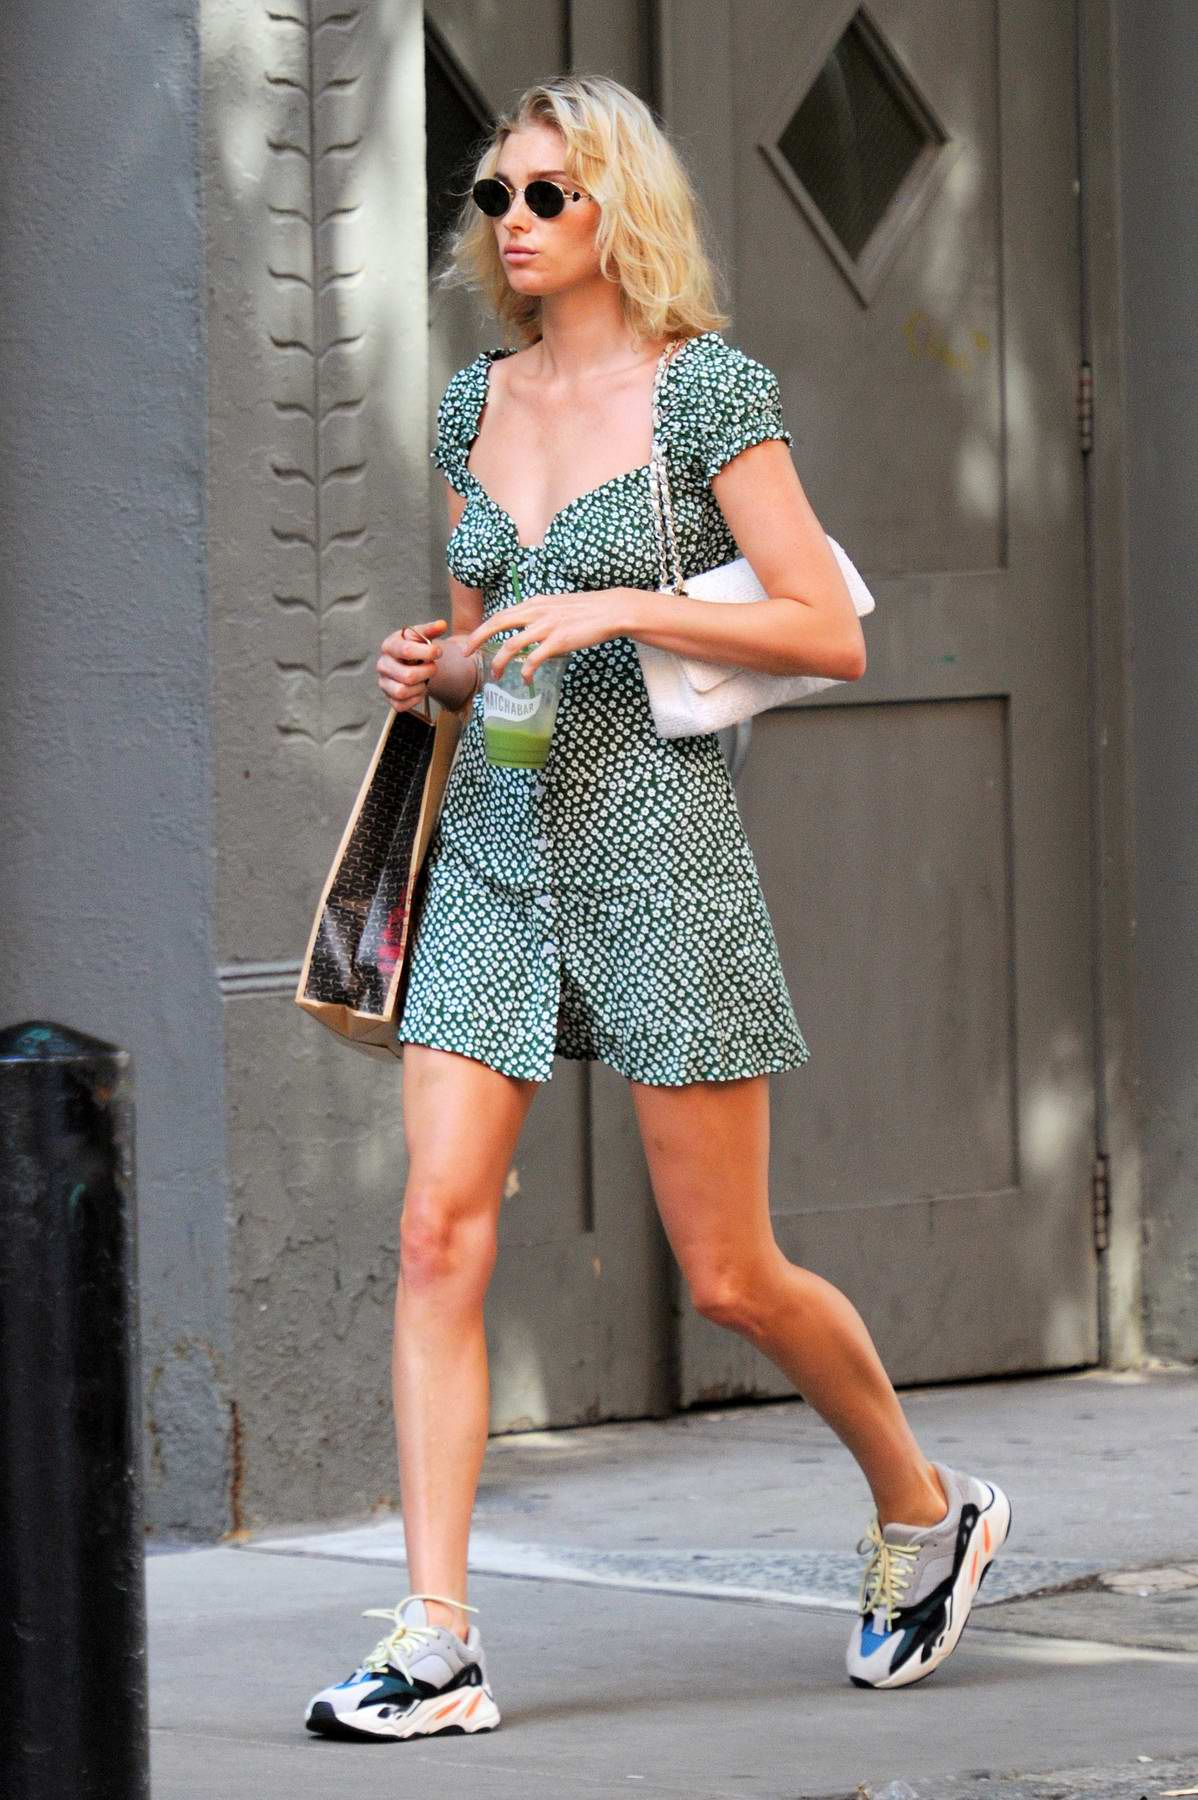 Elsa Hosk spotted in a short dress enjoying some green smoothie while out in New York City